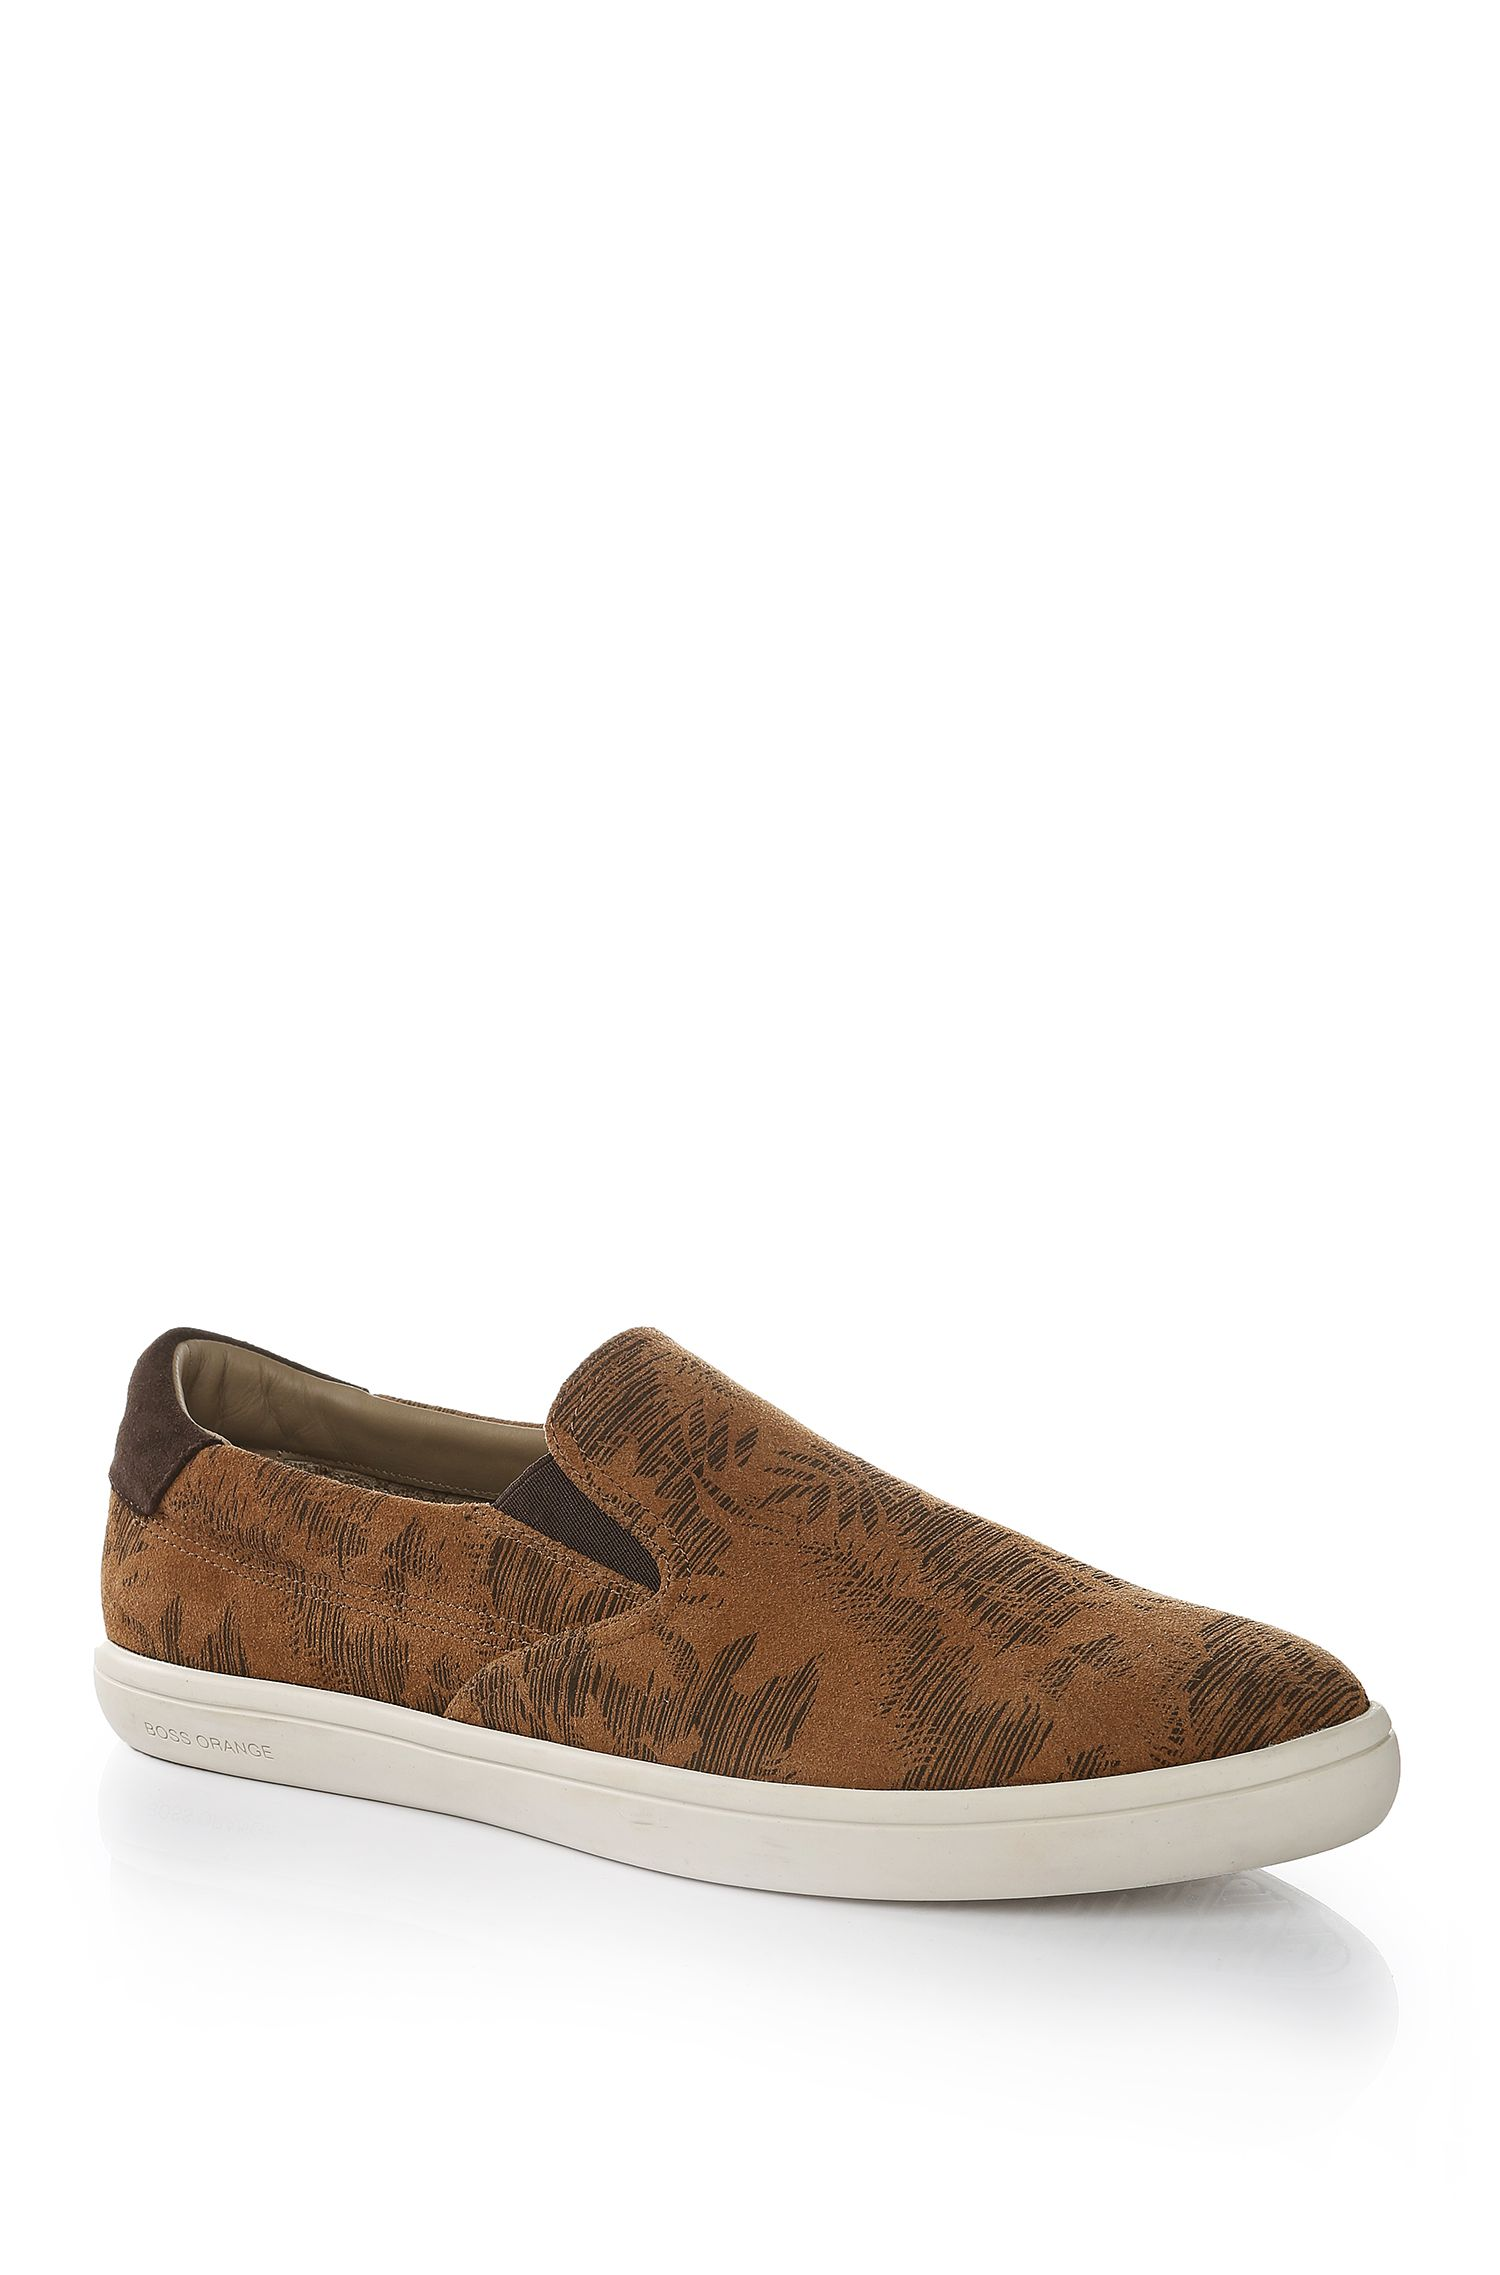 Slip-on sneakers met dessin: 'Sovan'